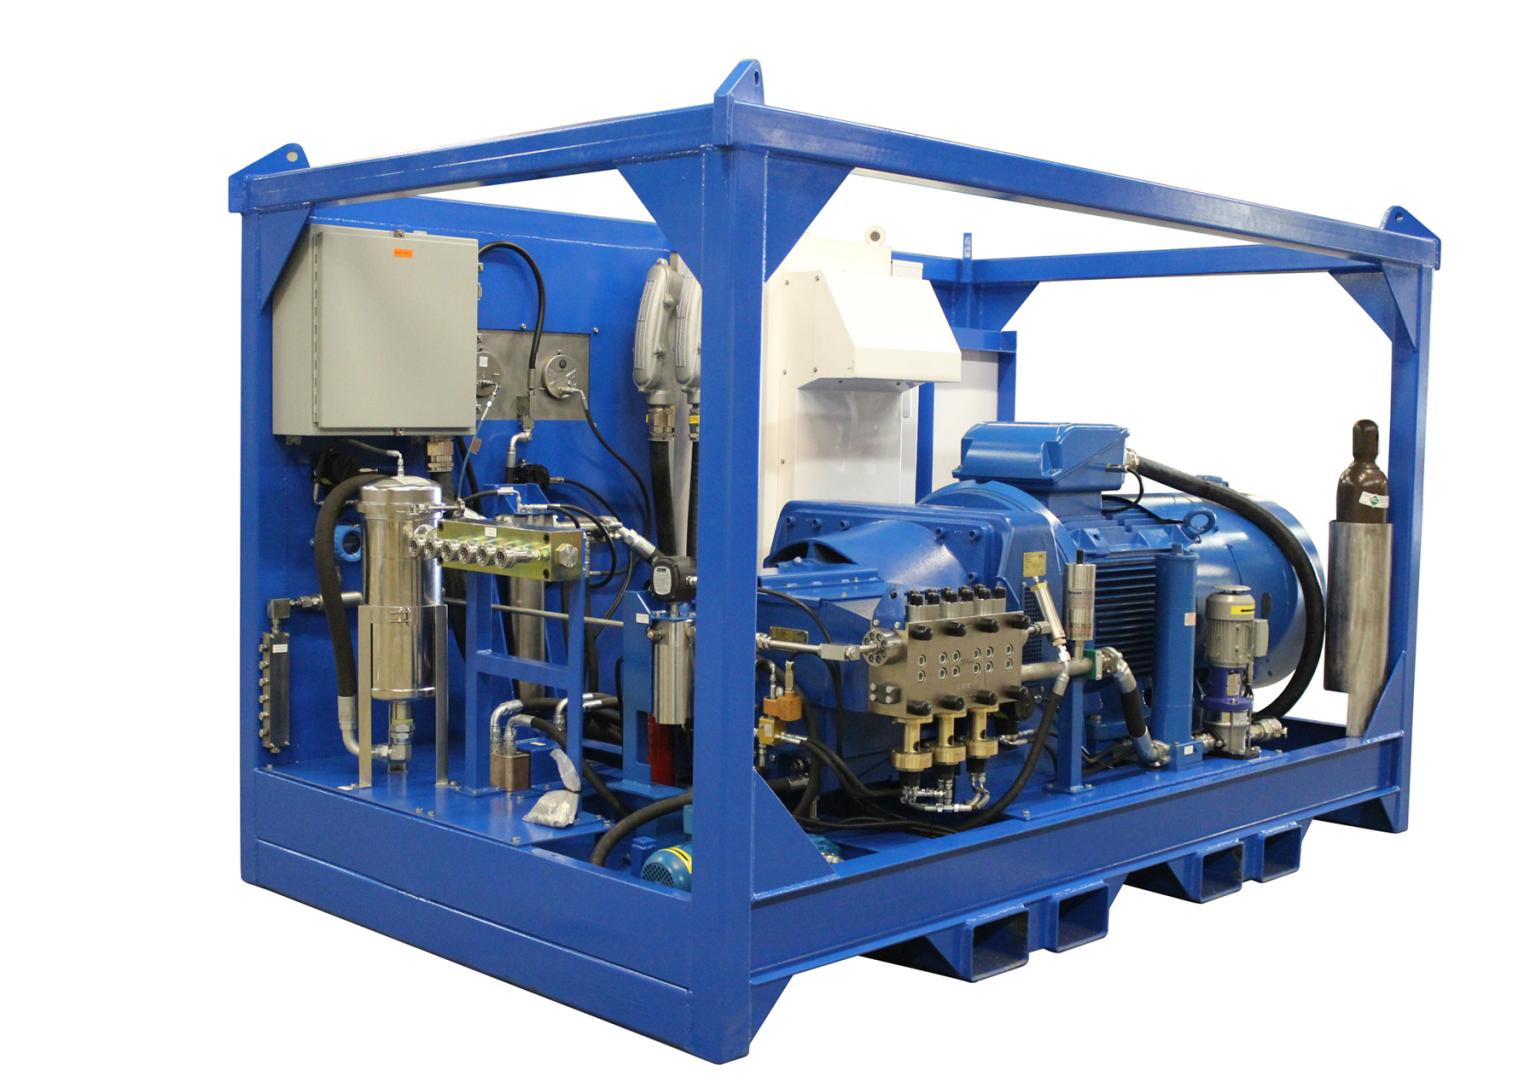 The completed test rig provided this facility with a much more efficient pump, providing substantial savings in time and money to complete the testing and flushing operations